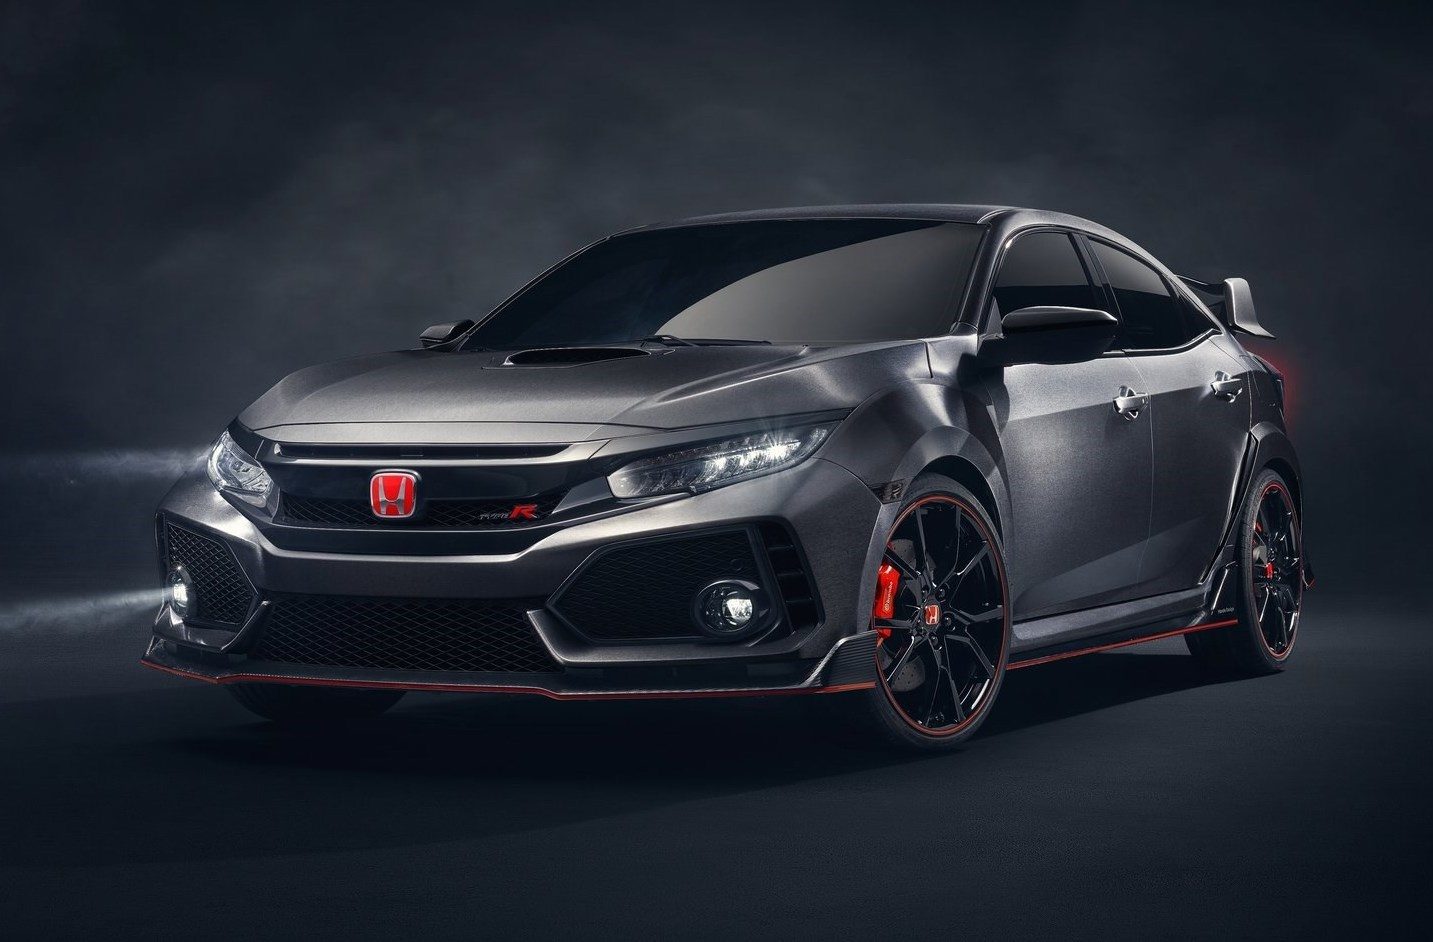 Este es el espectacular honda civic type r 2017 300 cv for Buy honda civic type r